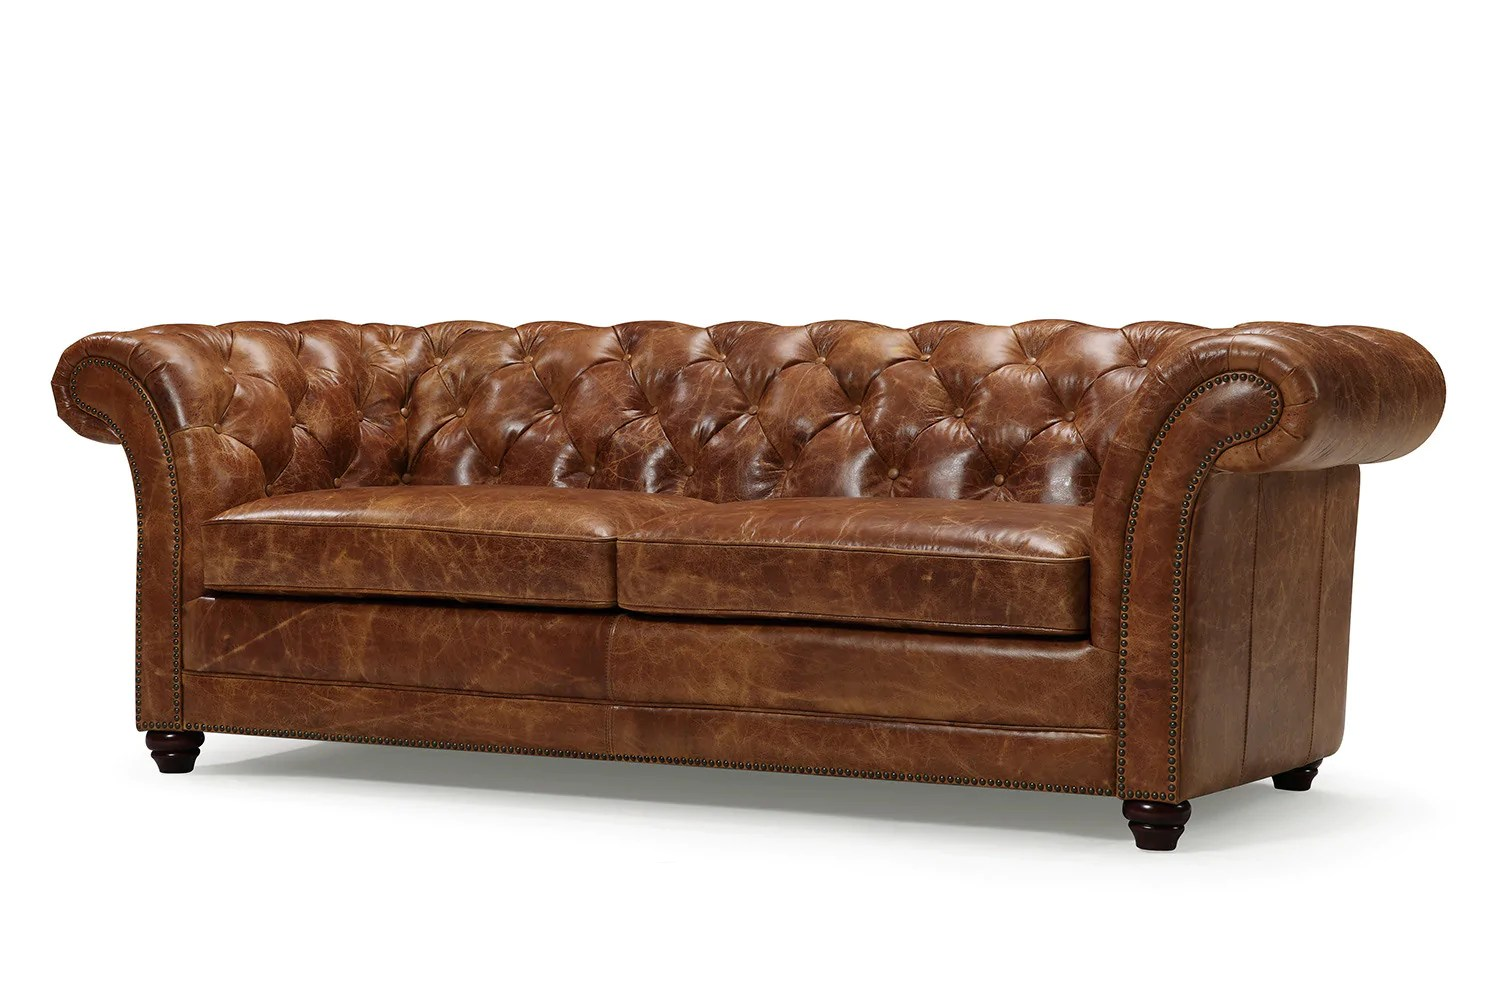 tufted leather sofa cheap and loveseat set the westminster chesterfield rose moore couch